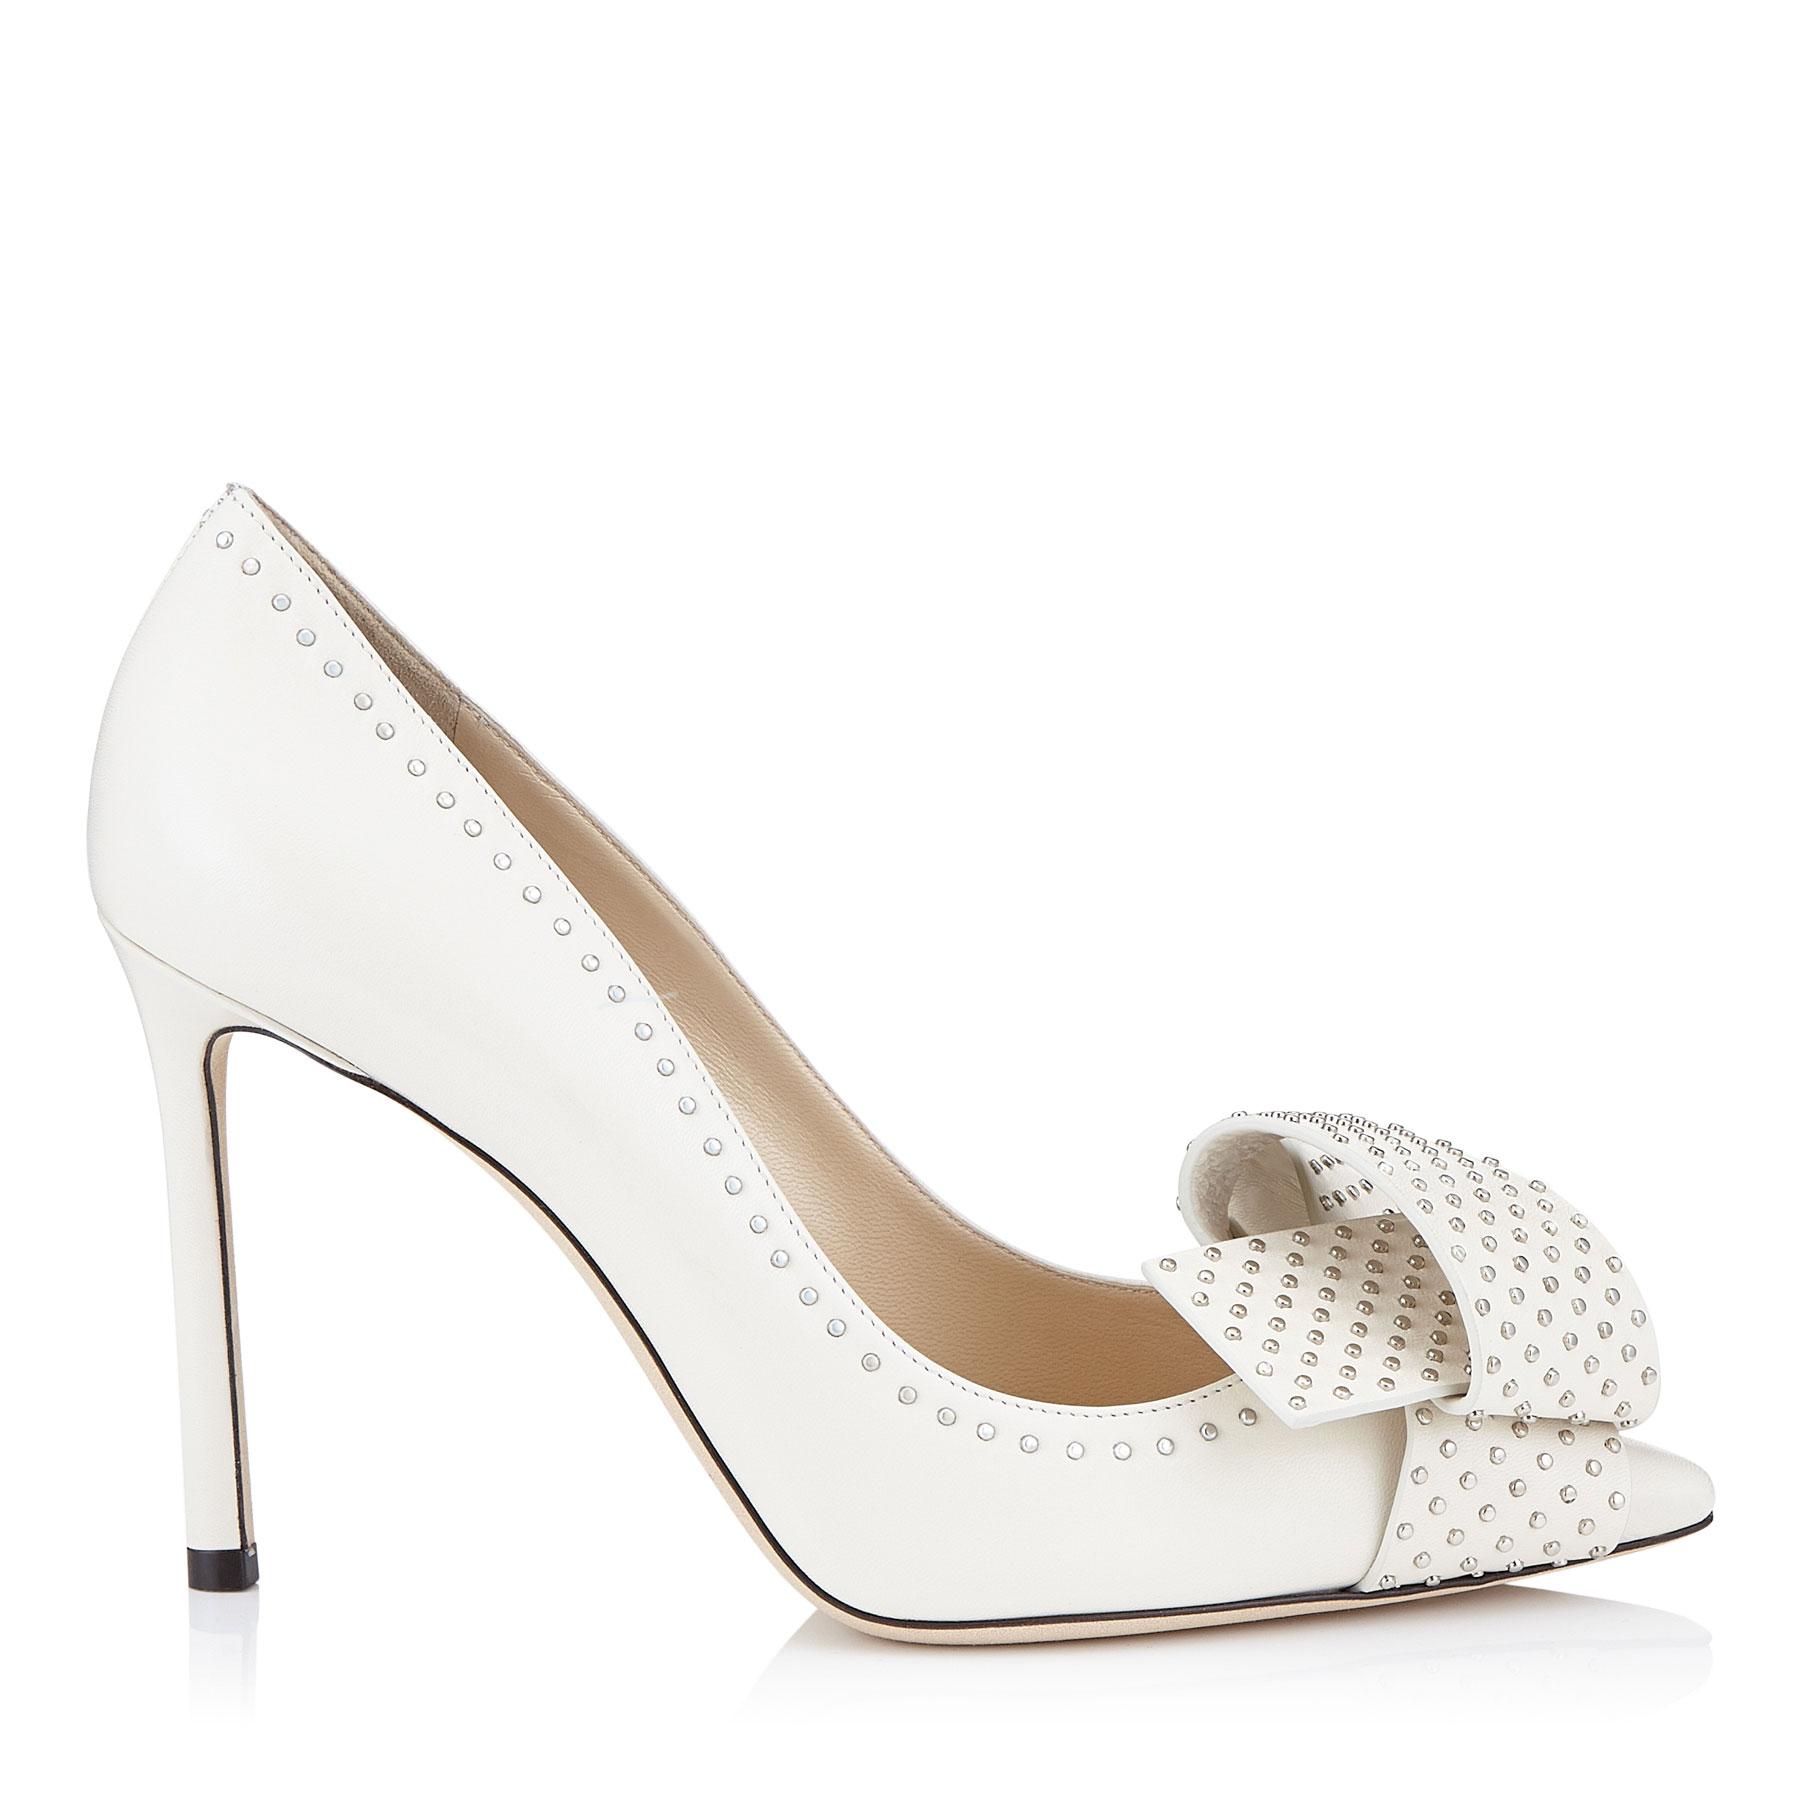 TEGAN 100 Chalk Kid Leather Pointy Toe Pumps with Studded Bow Detailing by Jimmy Choo